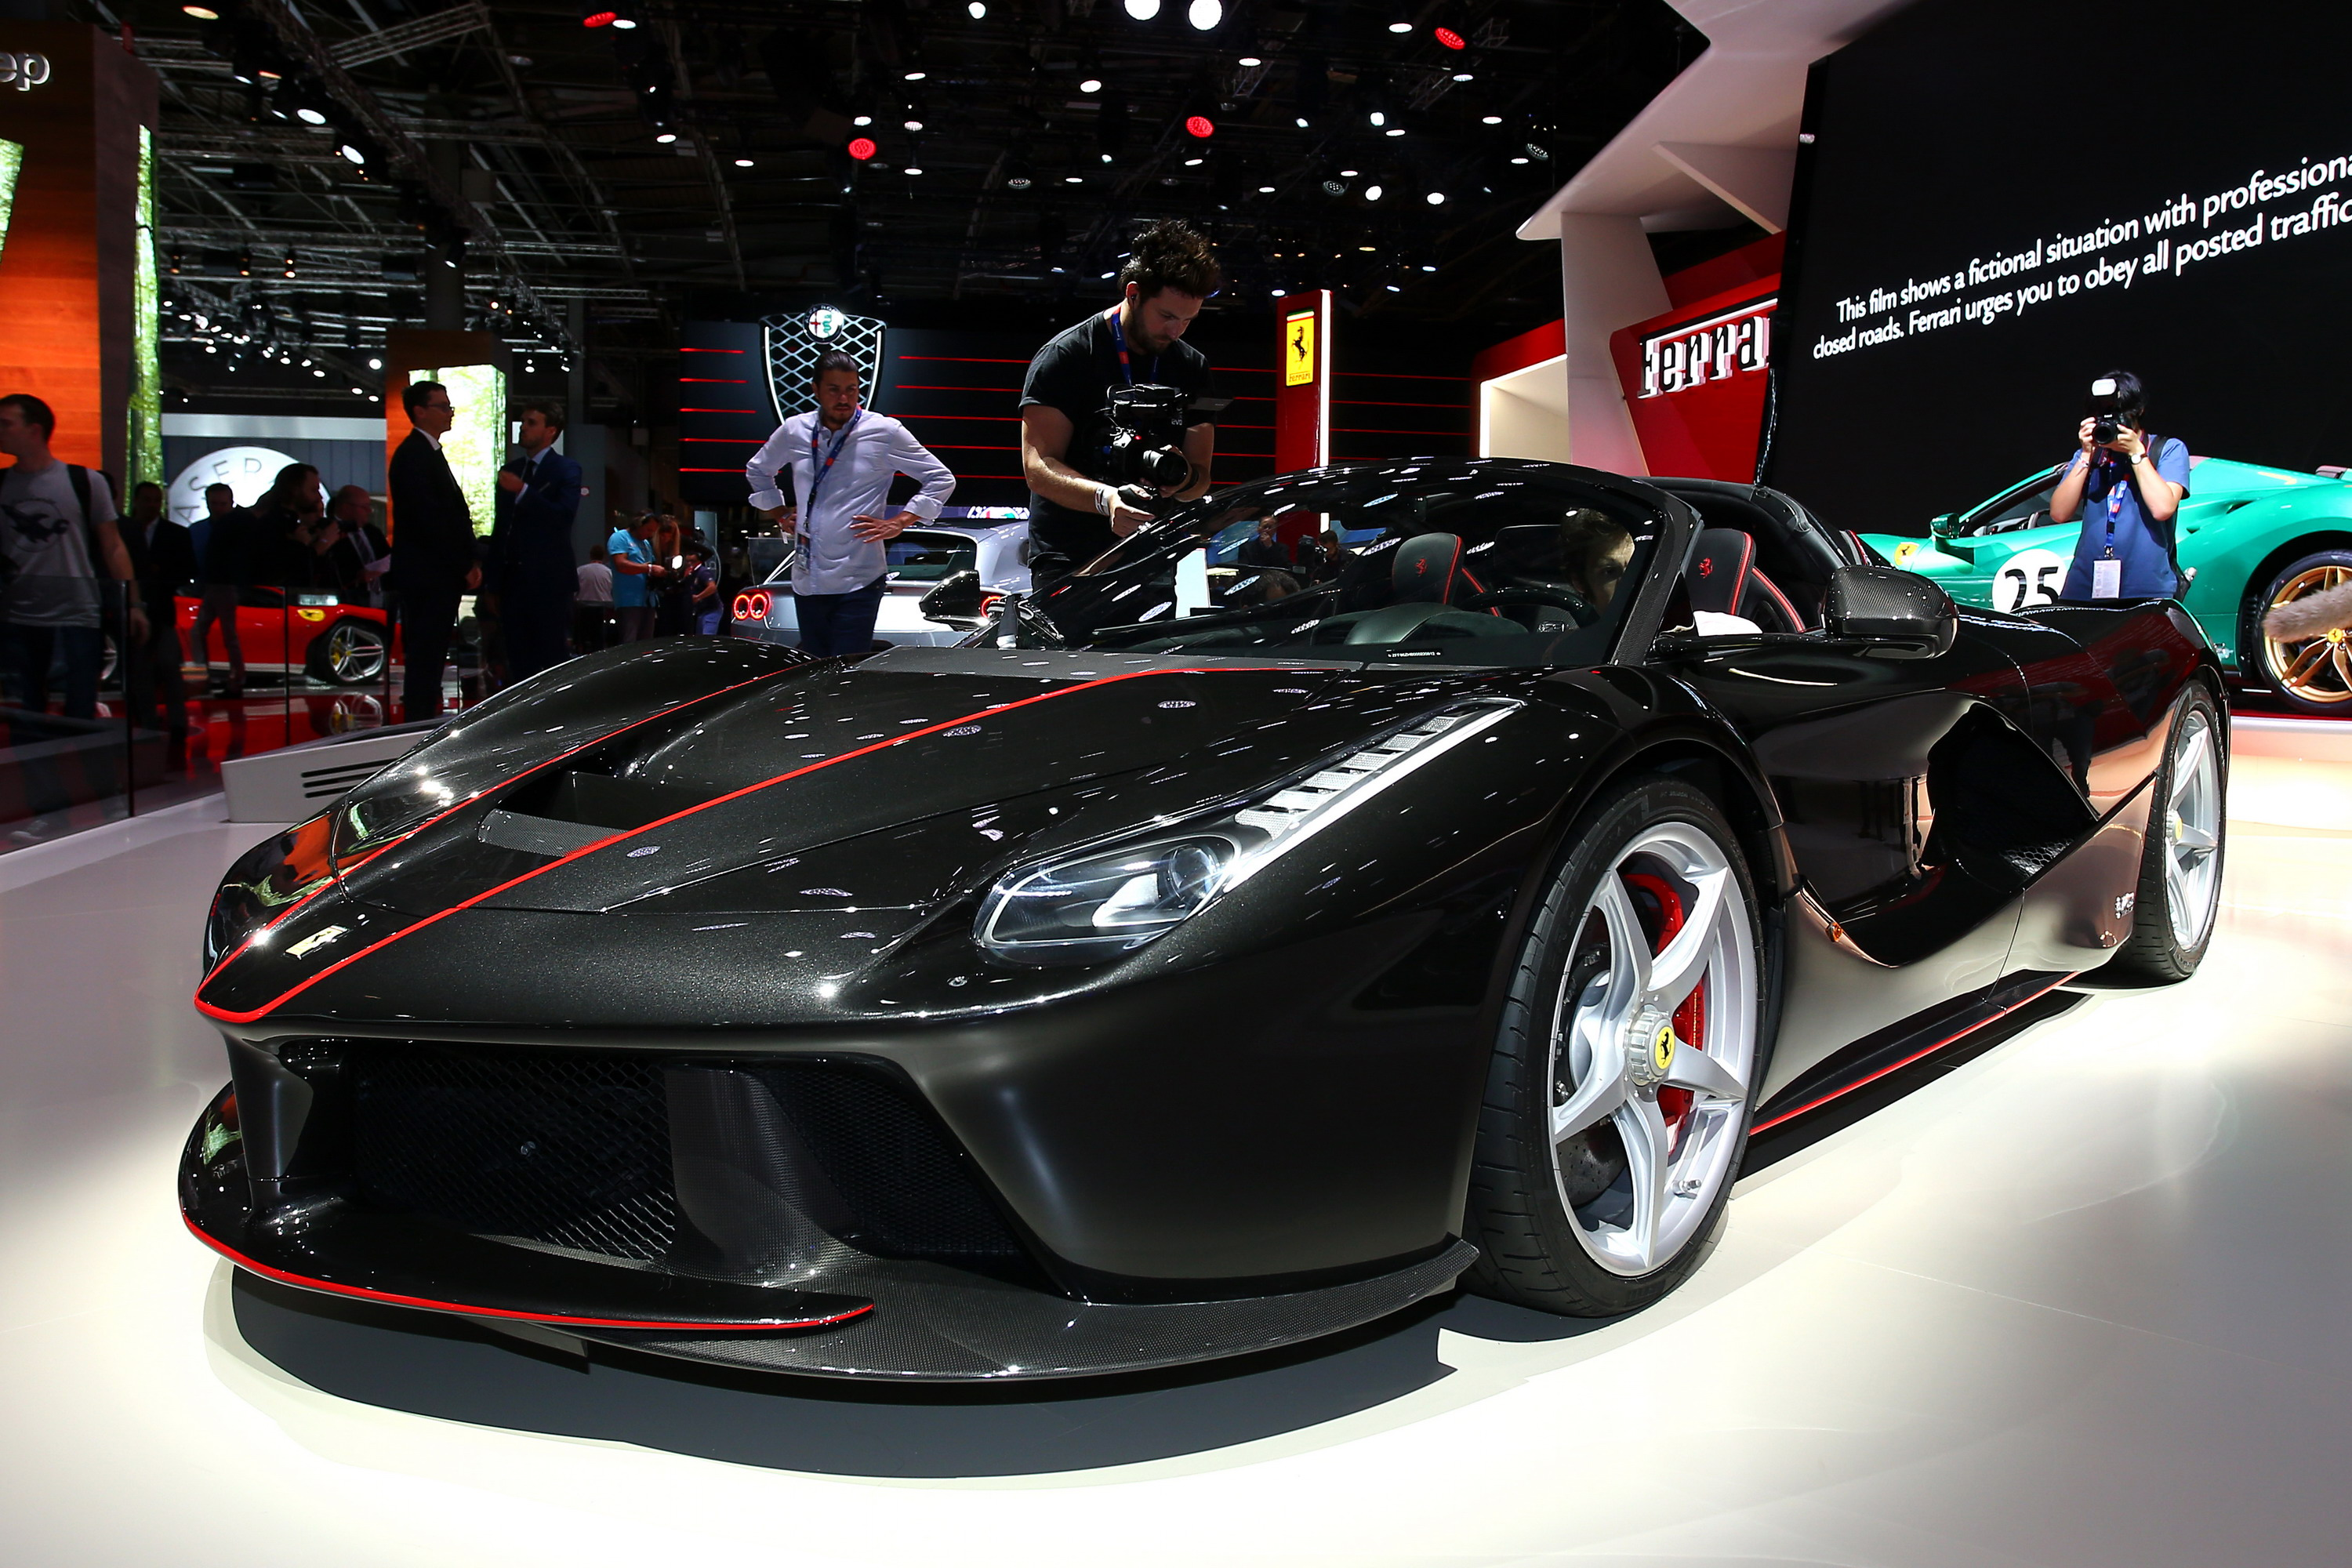 2017 Ferrari LaFerrari Aperta | Top Sd on ferrari electric car, ferrari f100, ferrari f60, ferrari meme, ferrari aliante, ferrari ego, ferrari lamborghini mix, ferrari f750, ferrari bike, ferrari laptop, ferrari f1, ferrari f1000, ferrari of the future, ferrari concept, ferrari formula 1, ferrari cop car, ferrari logo, ferrari ff, ferrari suv,